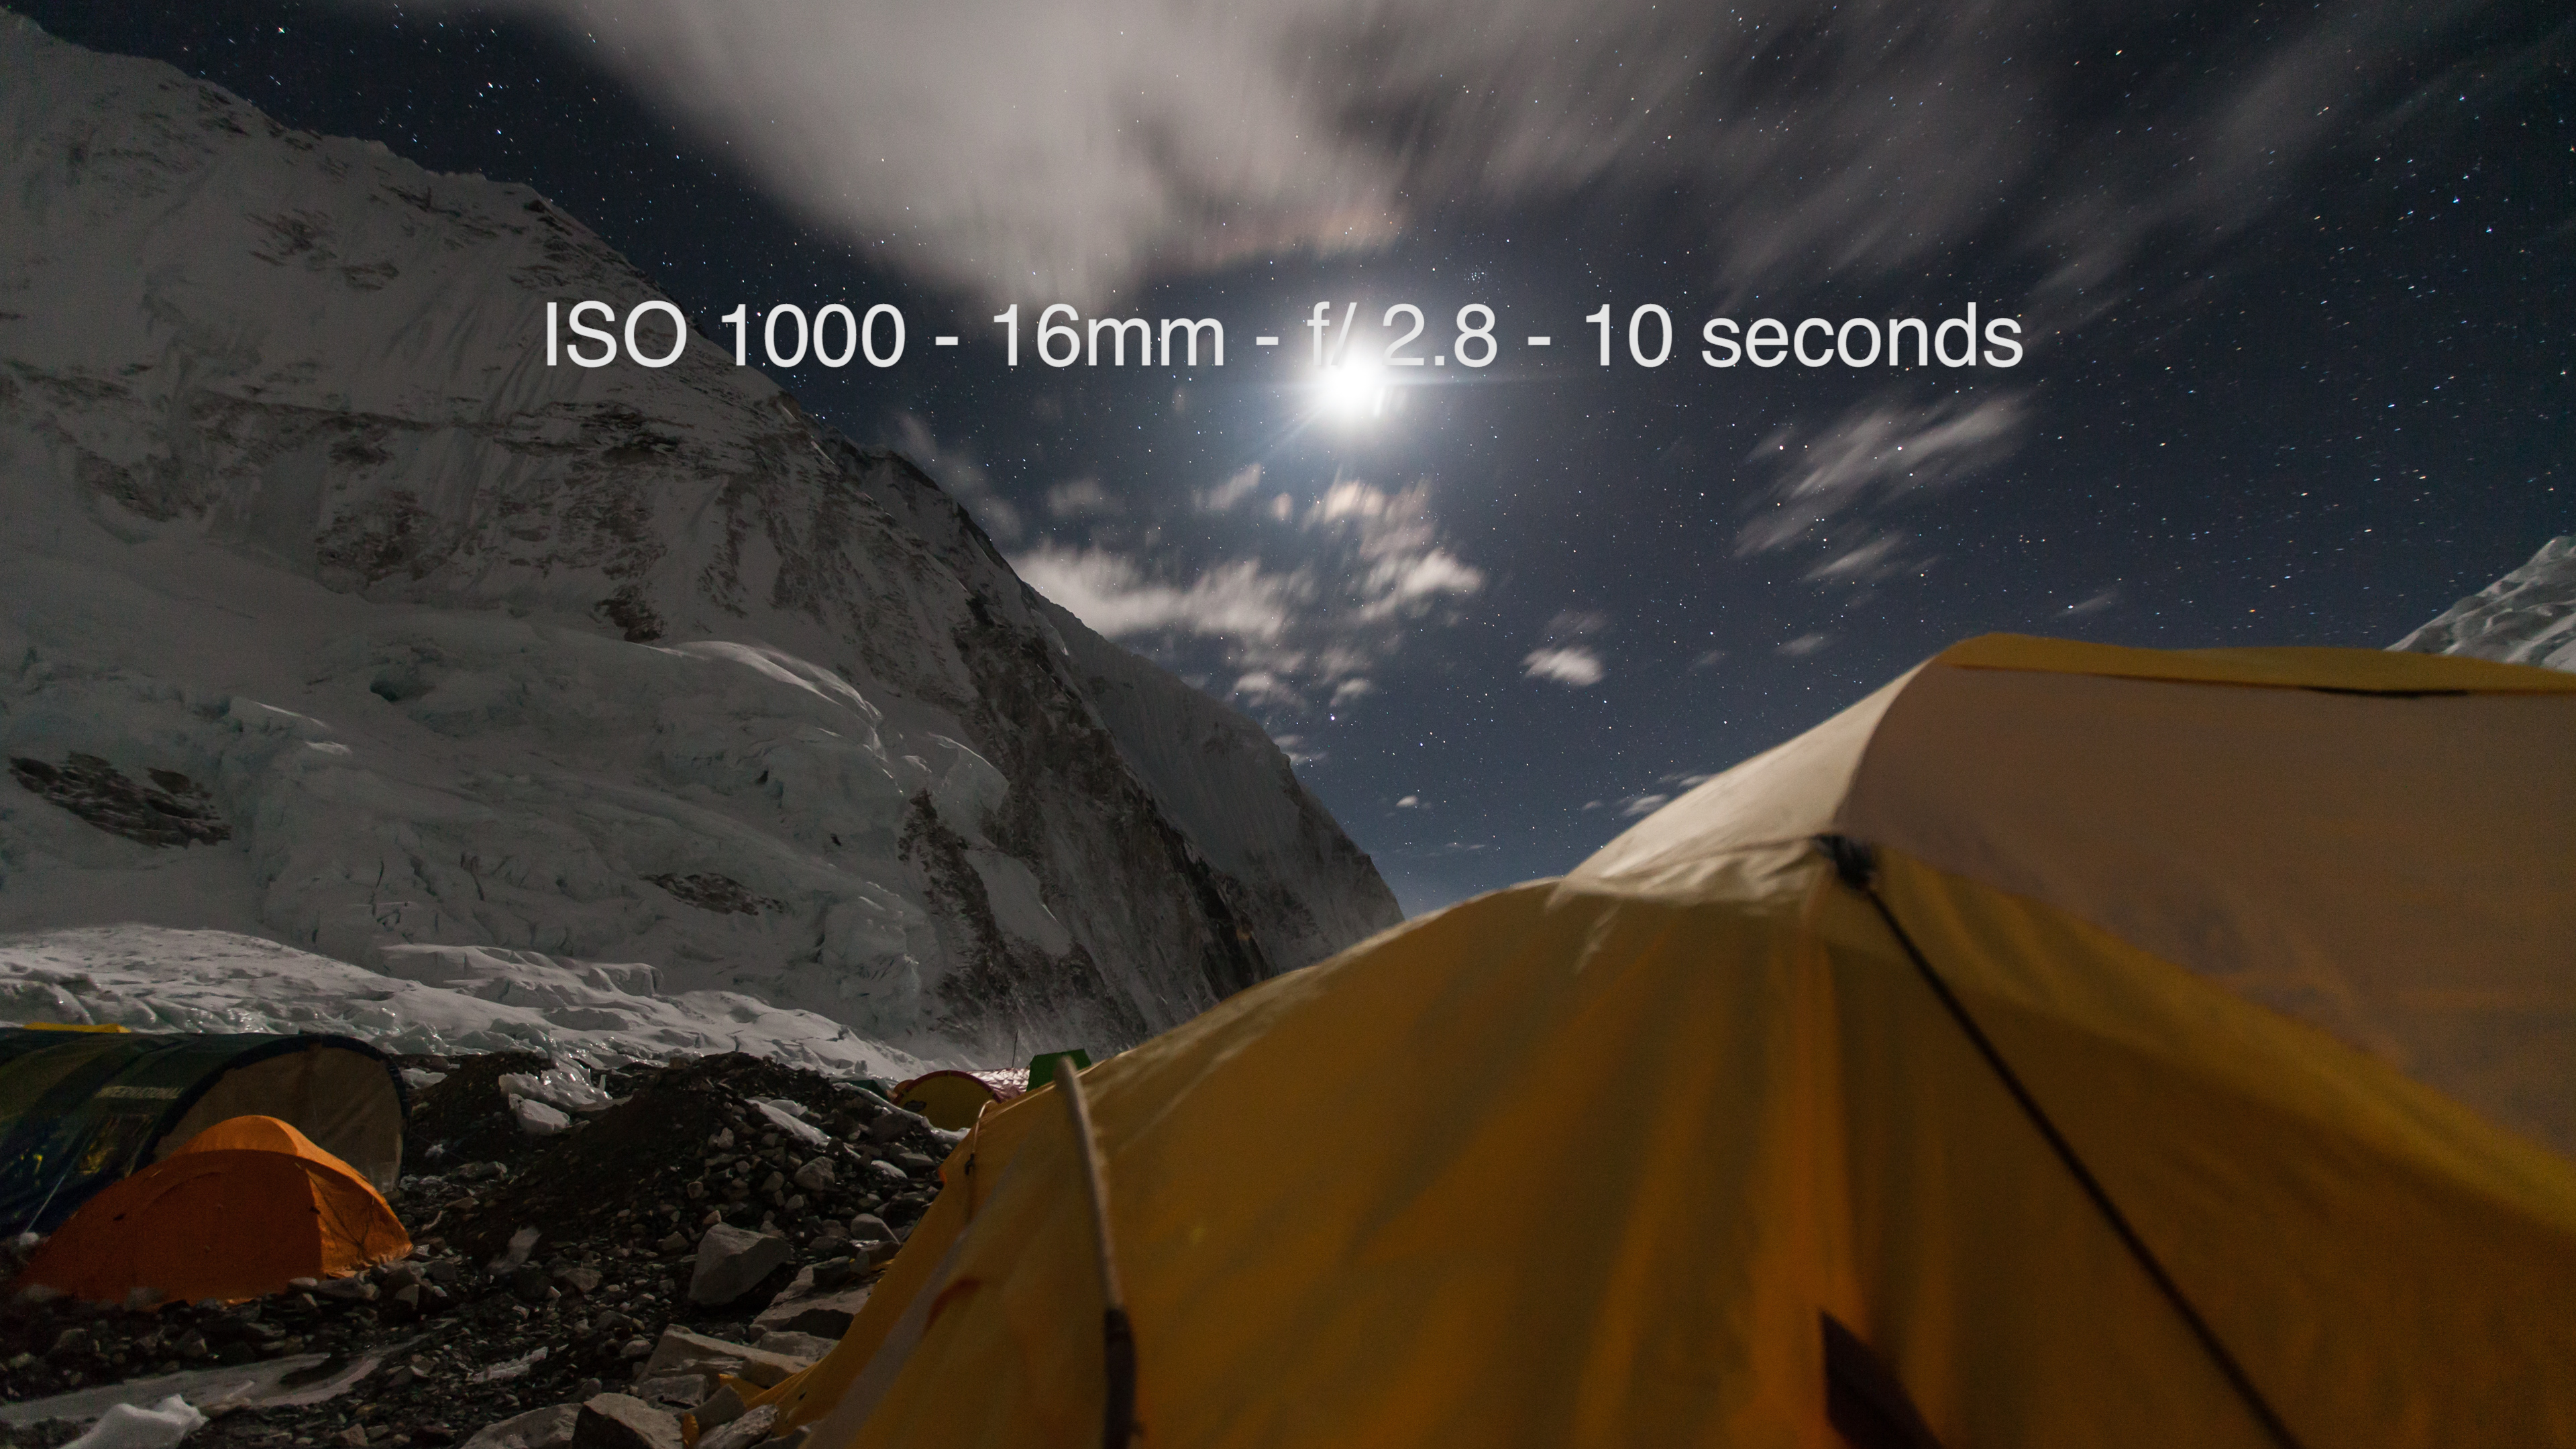 Camp 2 on Mount Everest at 6,705